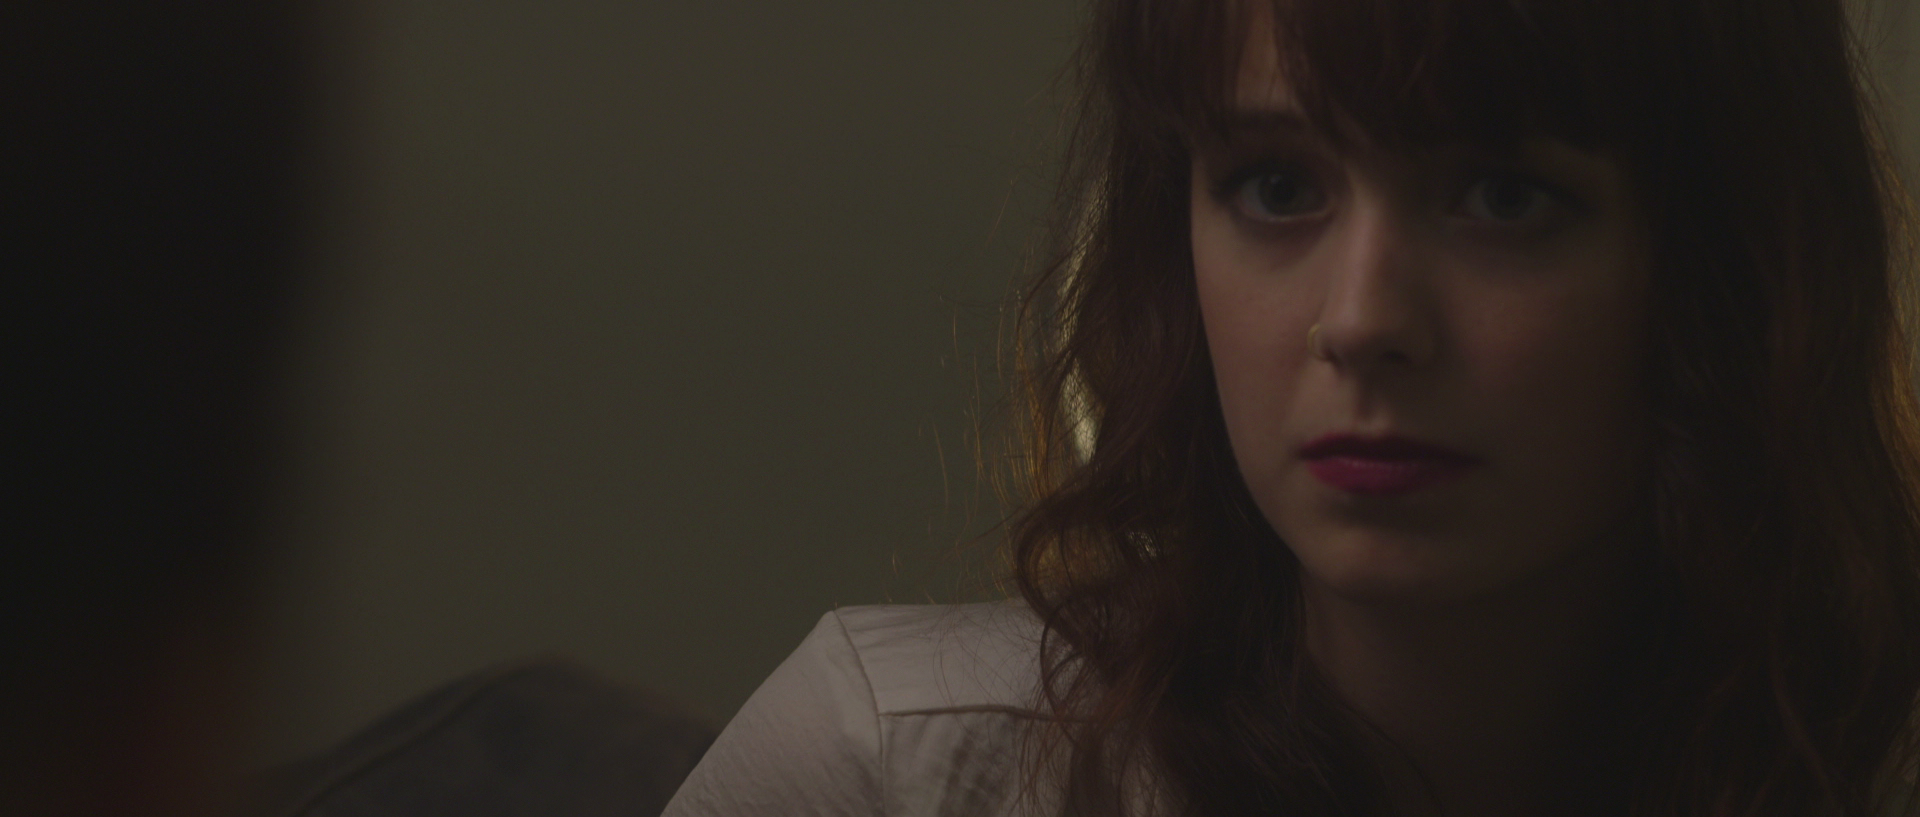 "Lauren A. Kennedy as Elizabeth in ""We Had Plans"""